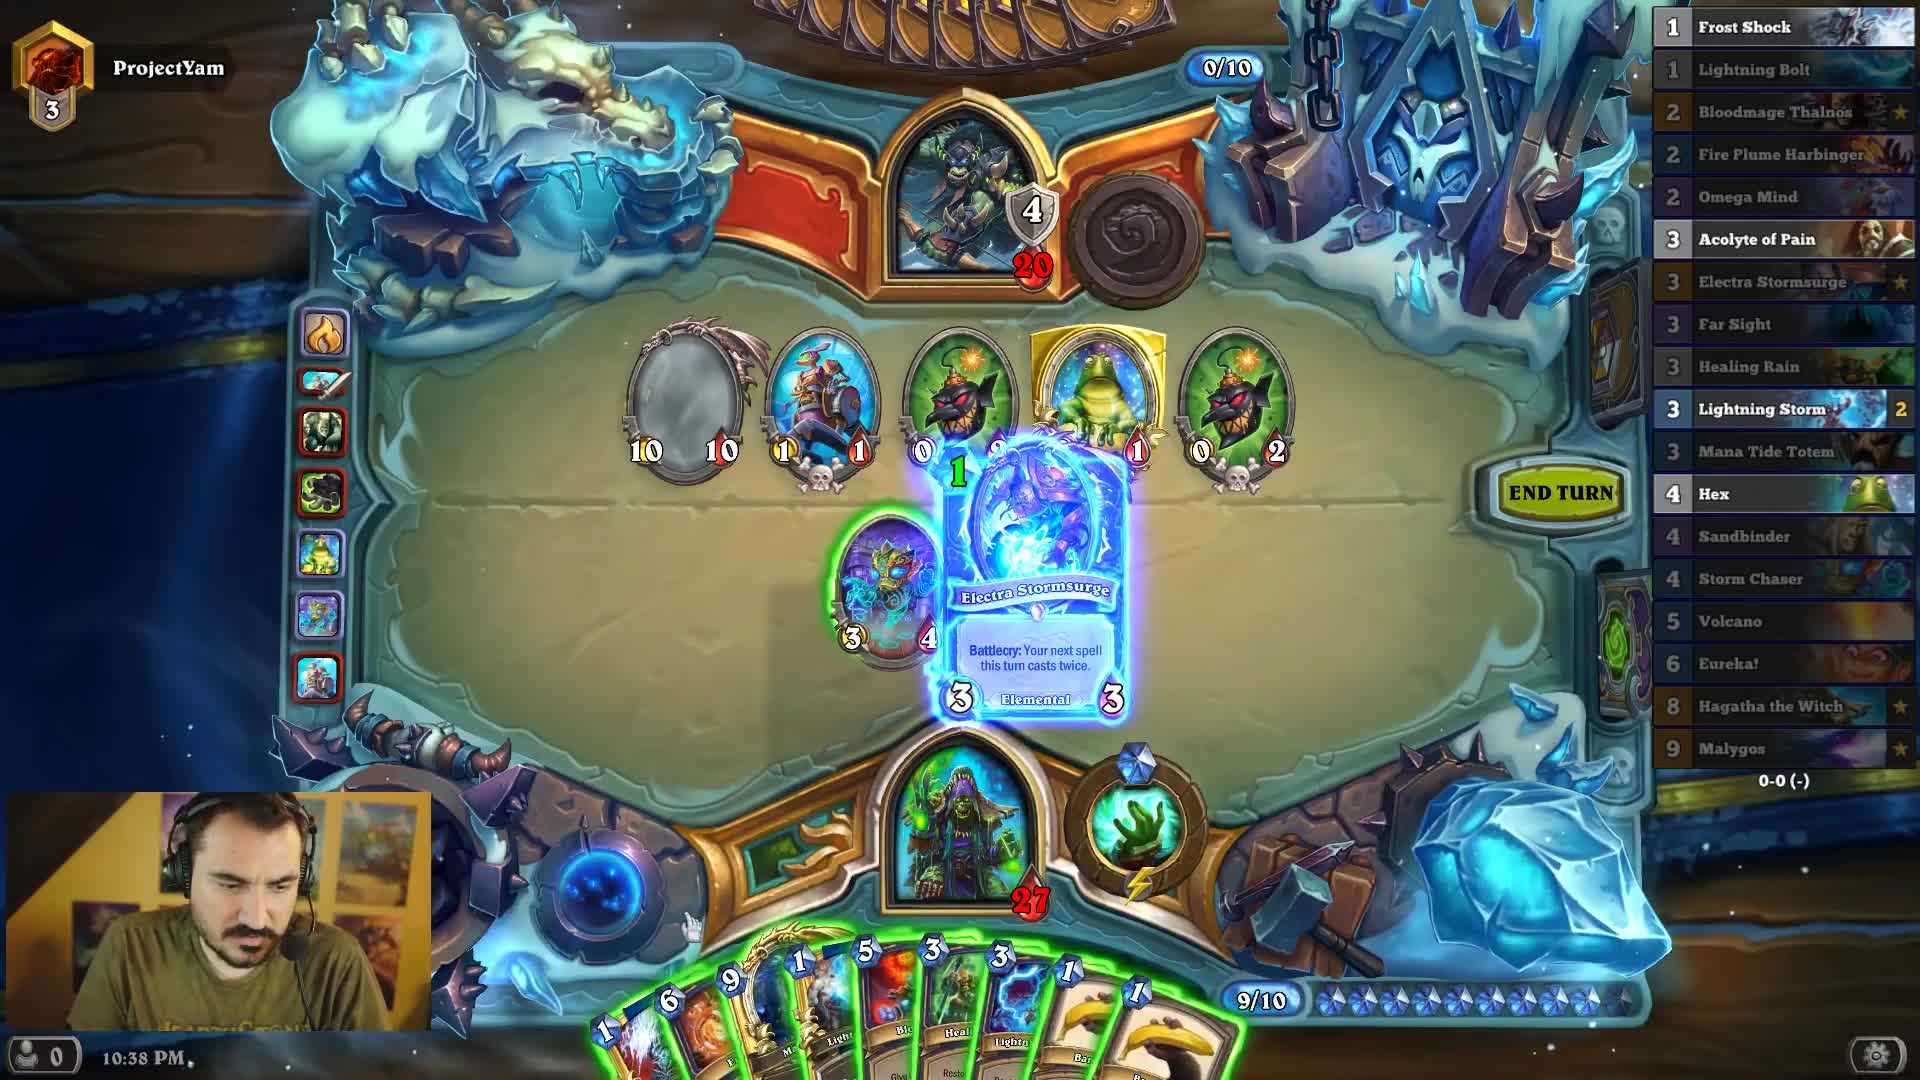 Arena, Boomsday, Boomsday Deck, Boomsday Project, HS, Hearthstone, Hearthstone Arena, Meta, Standard Deck, The Boomsday Project, EUREKA! SHAMAN LIVES - Boomsday / Constructed / Hearthstone GIFs